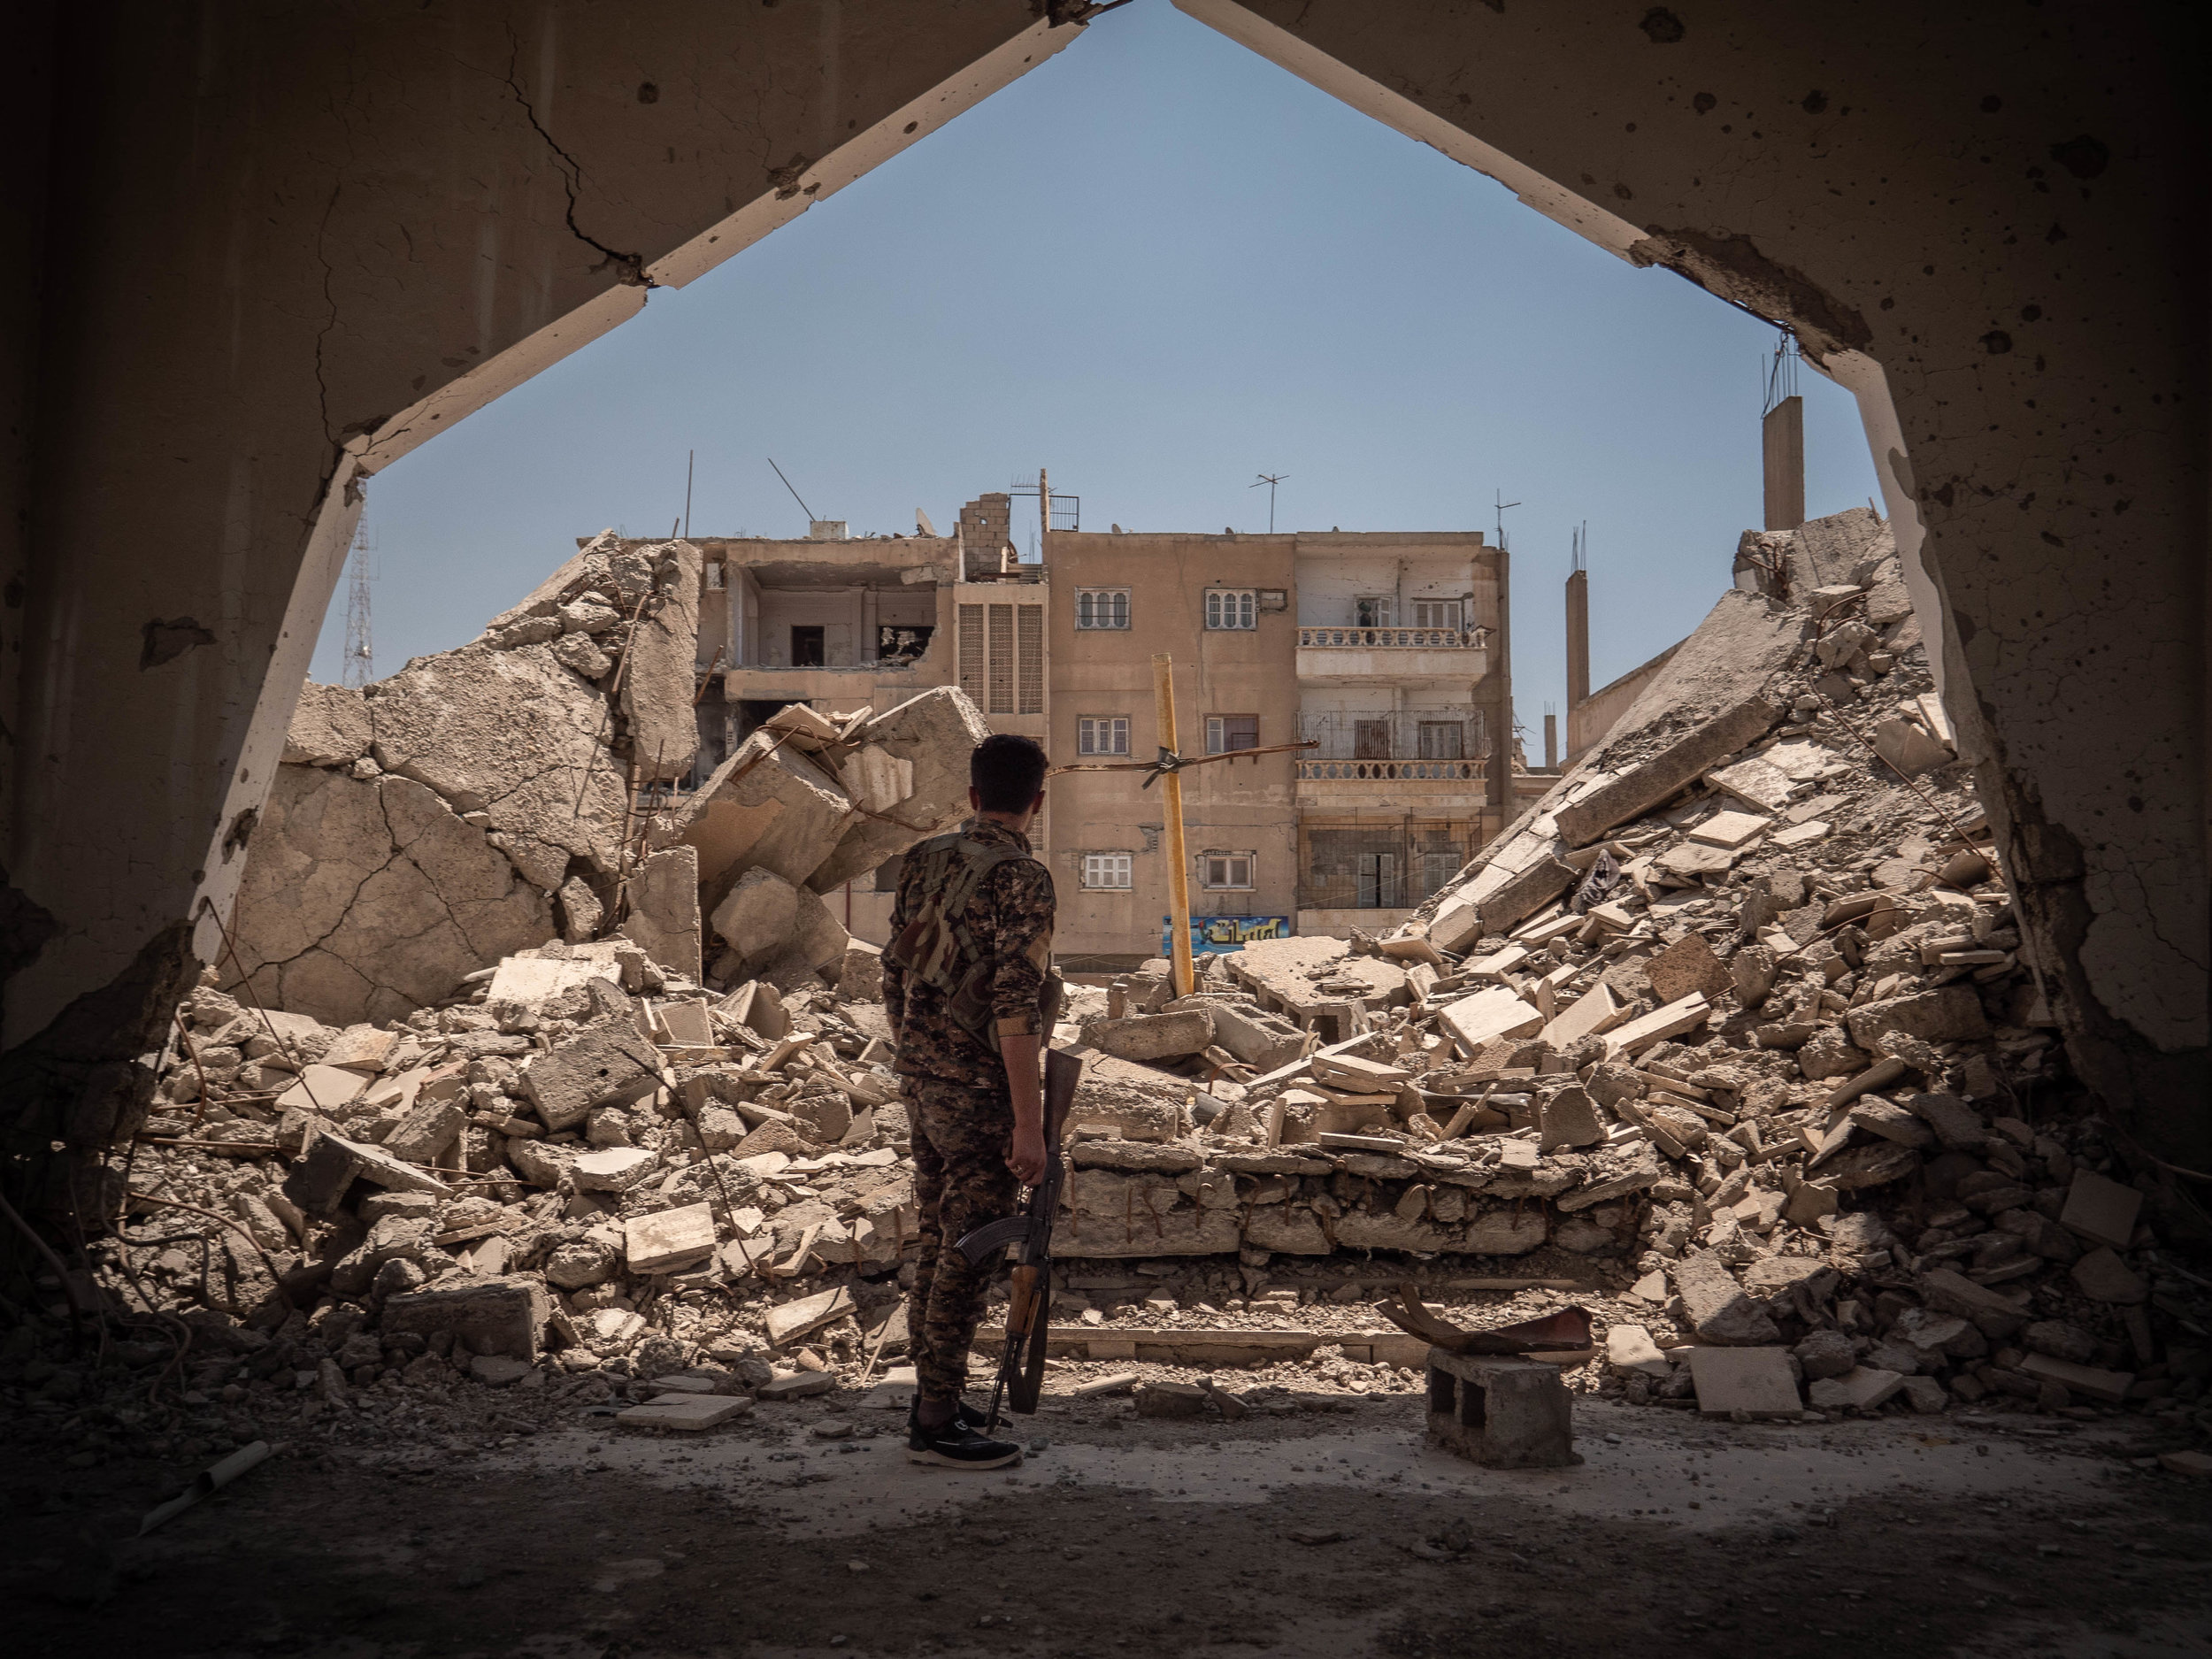 29/05/19, Raqqa, Syria - A member of the security forces inside a destroyed church in Raqqa.